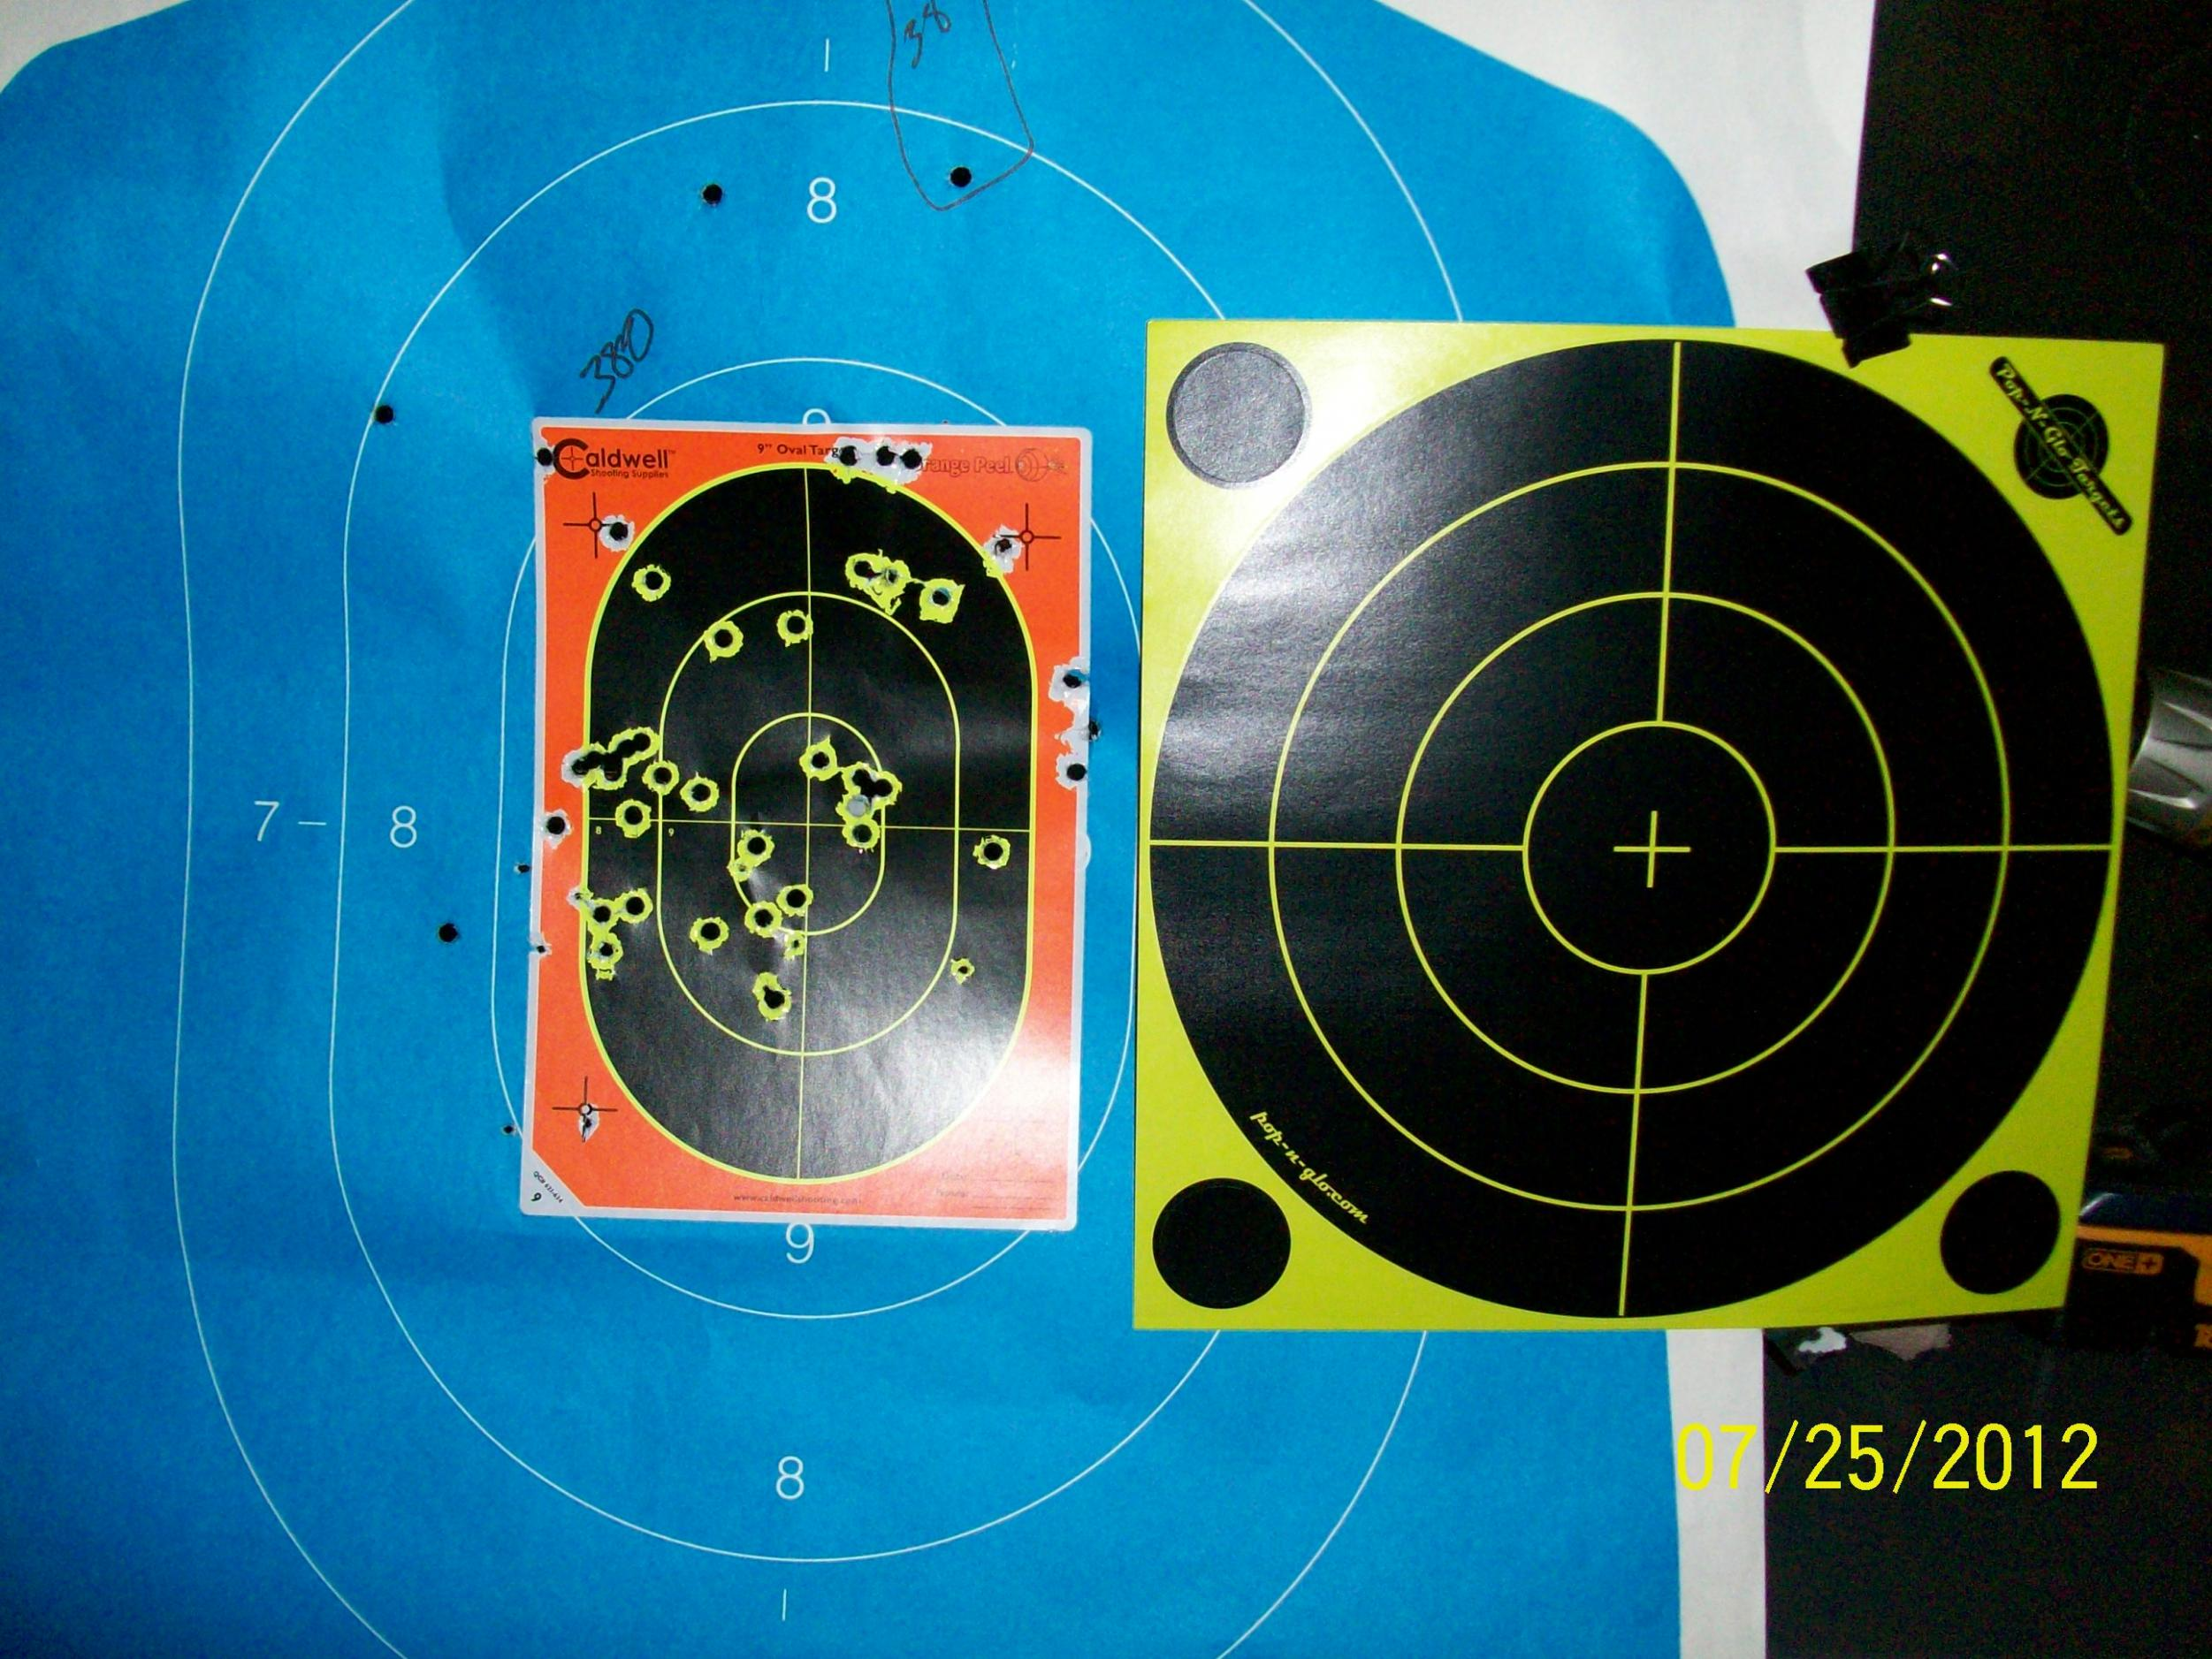 photograph about Printable Shooting Targets 11x17 referred to as Printable Aims